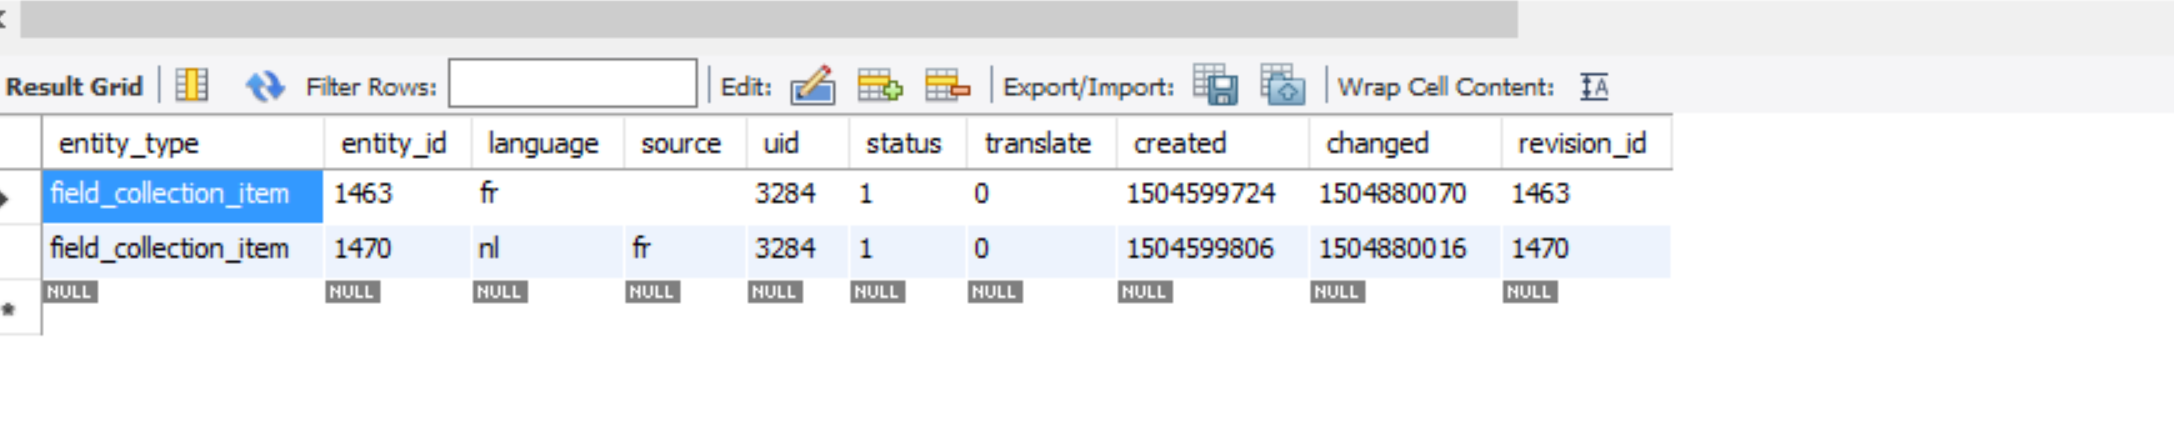 Field Collection Translation Compatibility Issue With